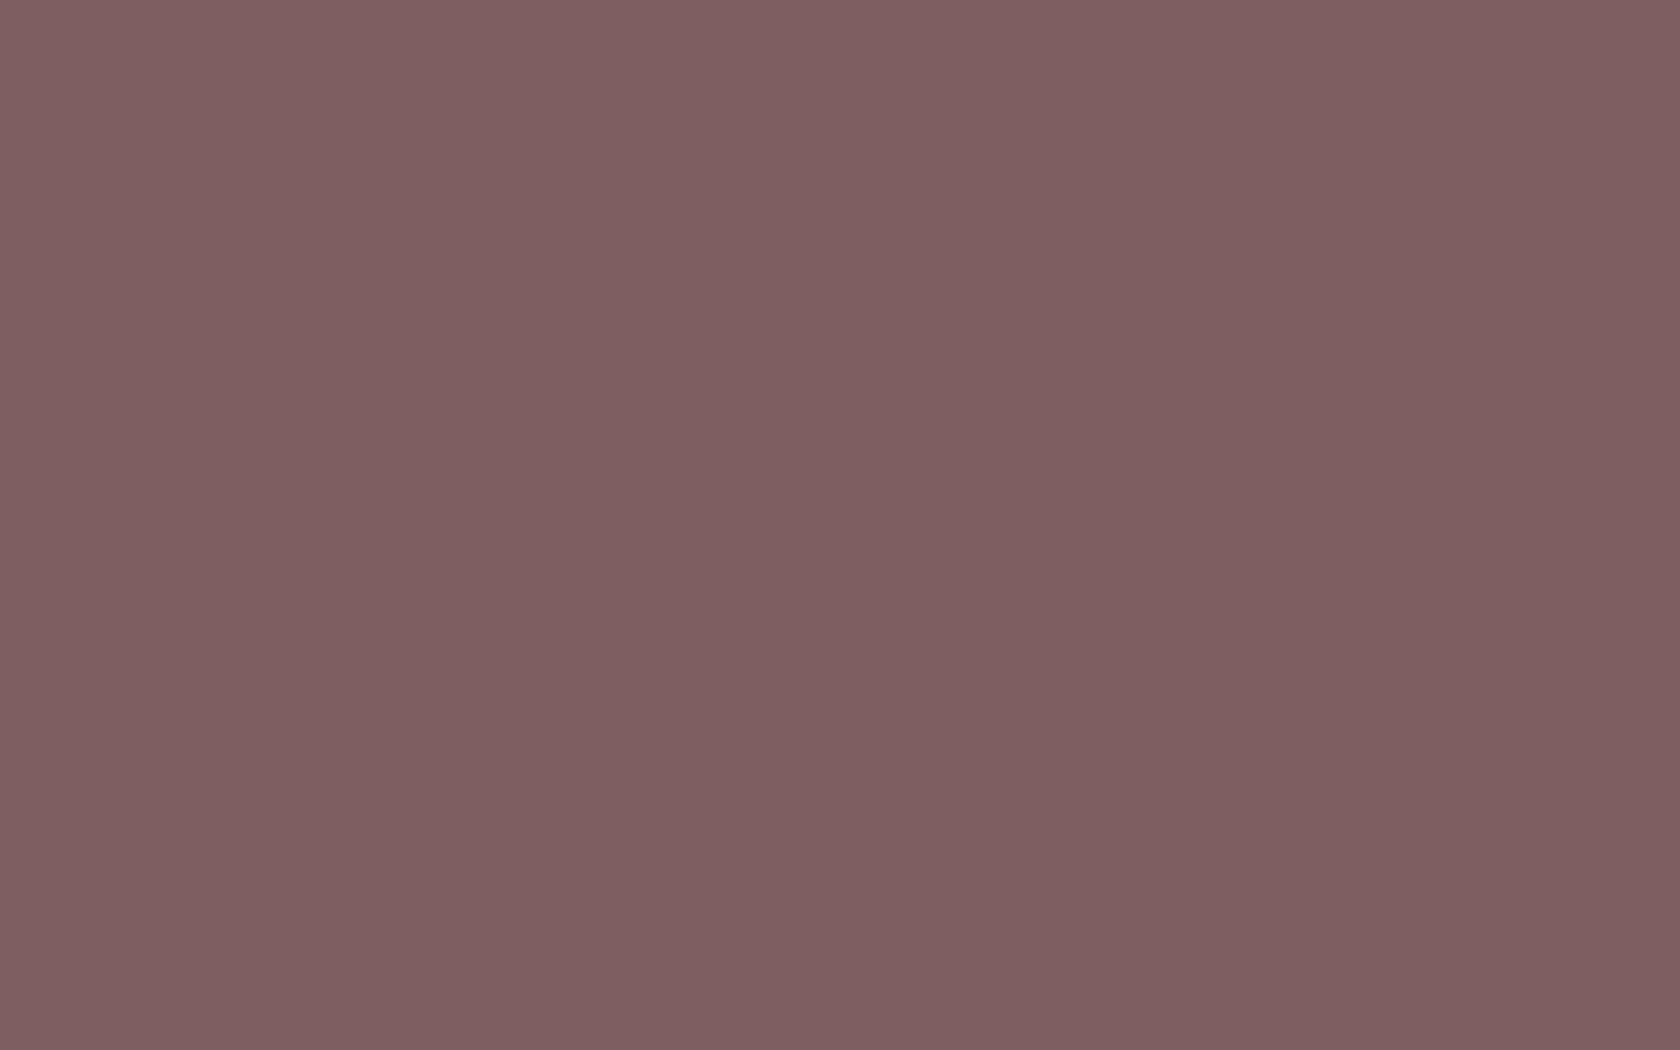 1680x1050 Deep Taupe Solid Color Background